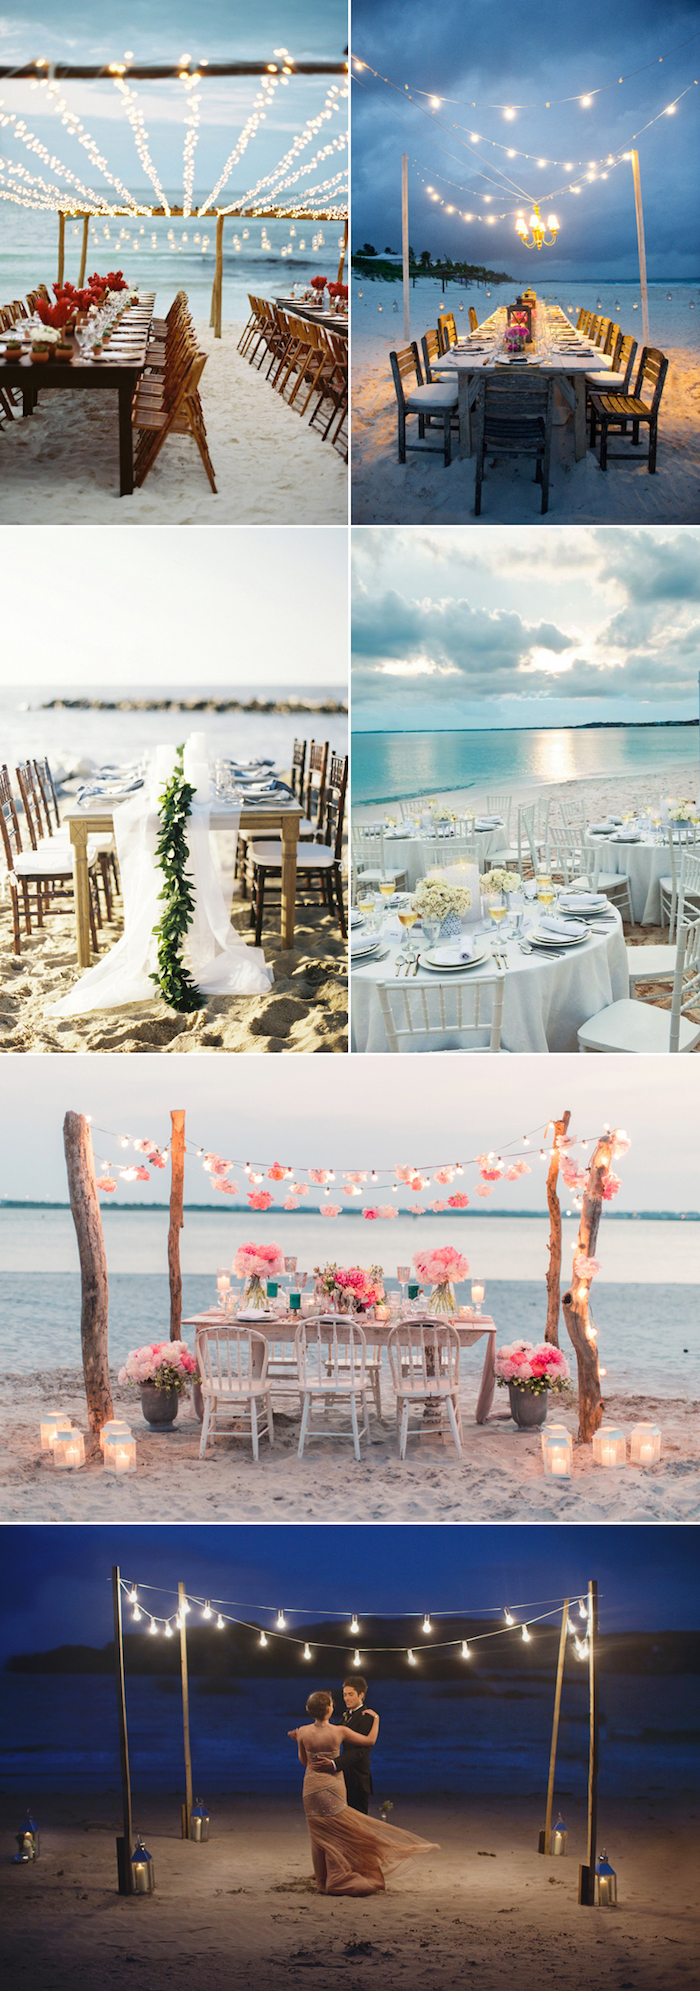 sunset and dusk weddings, six different setups, string lights and flowers, tables and chairs, one couple dancing, florida destination weddings on the beach